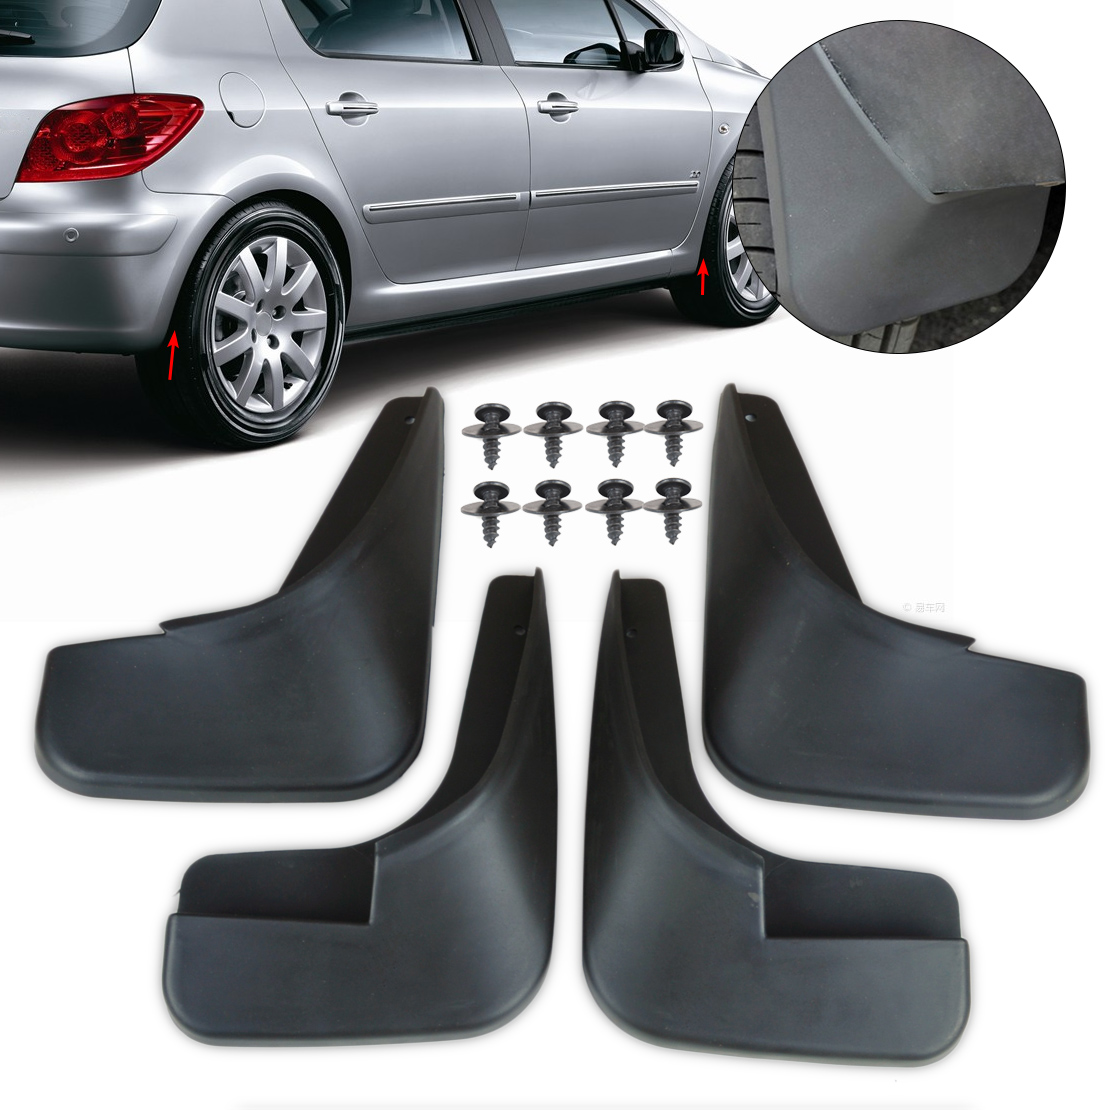 Peugeot 5008 Karpet Mobil Comfort Deluxe 12mm Car Mat Full Set Citall New 4pcs Mud Flaps Flap Splash Guards Mudguard Mudflaps Fenders For 307 2000 2001 2002 2003 2004 2005 2006 2007